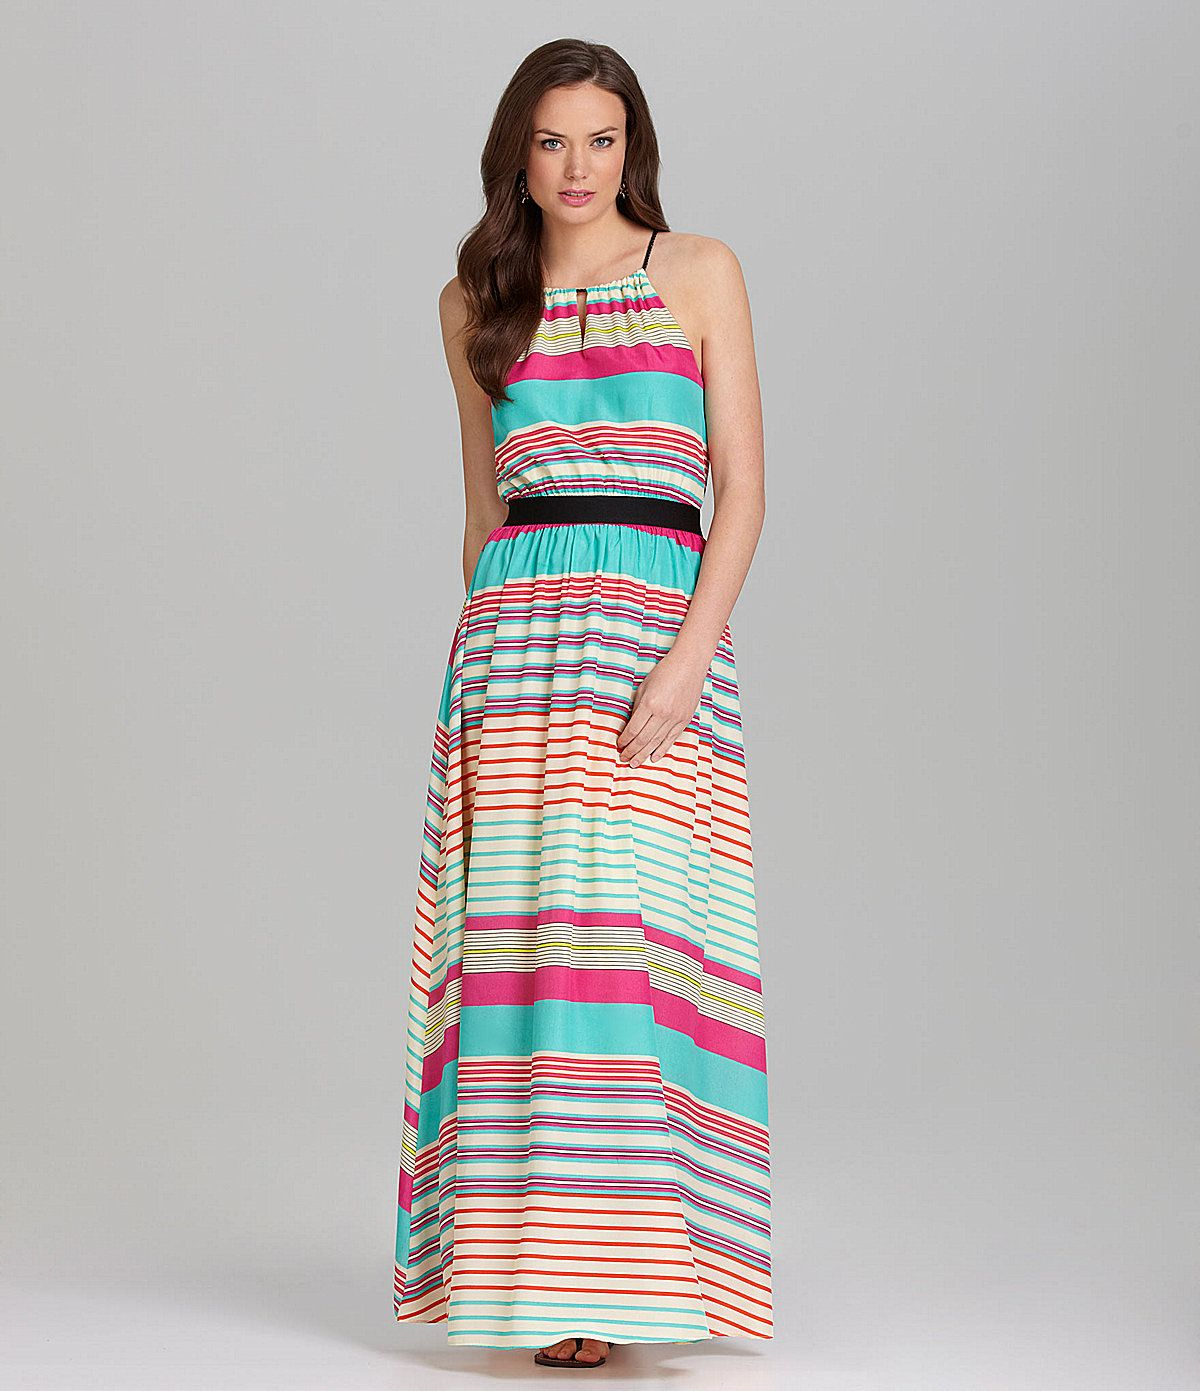 Latimer-striped-maxi-dress | Striped Maxi Dress | Pinterest | Maxi ...